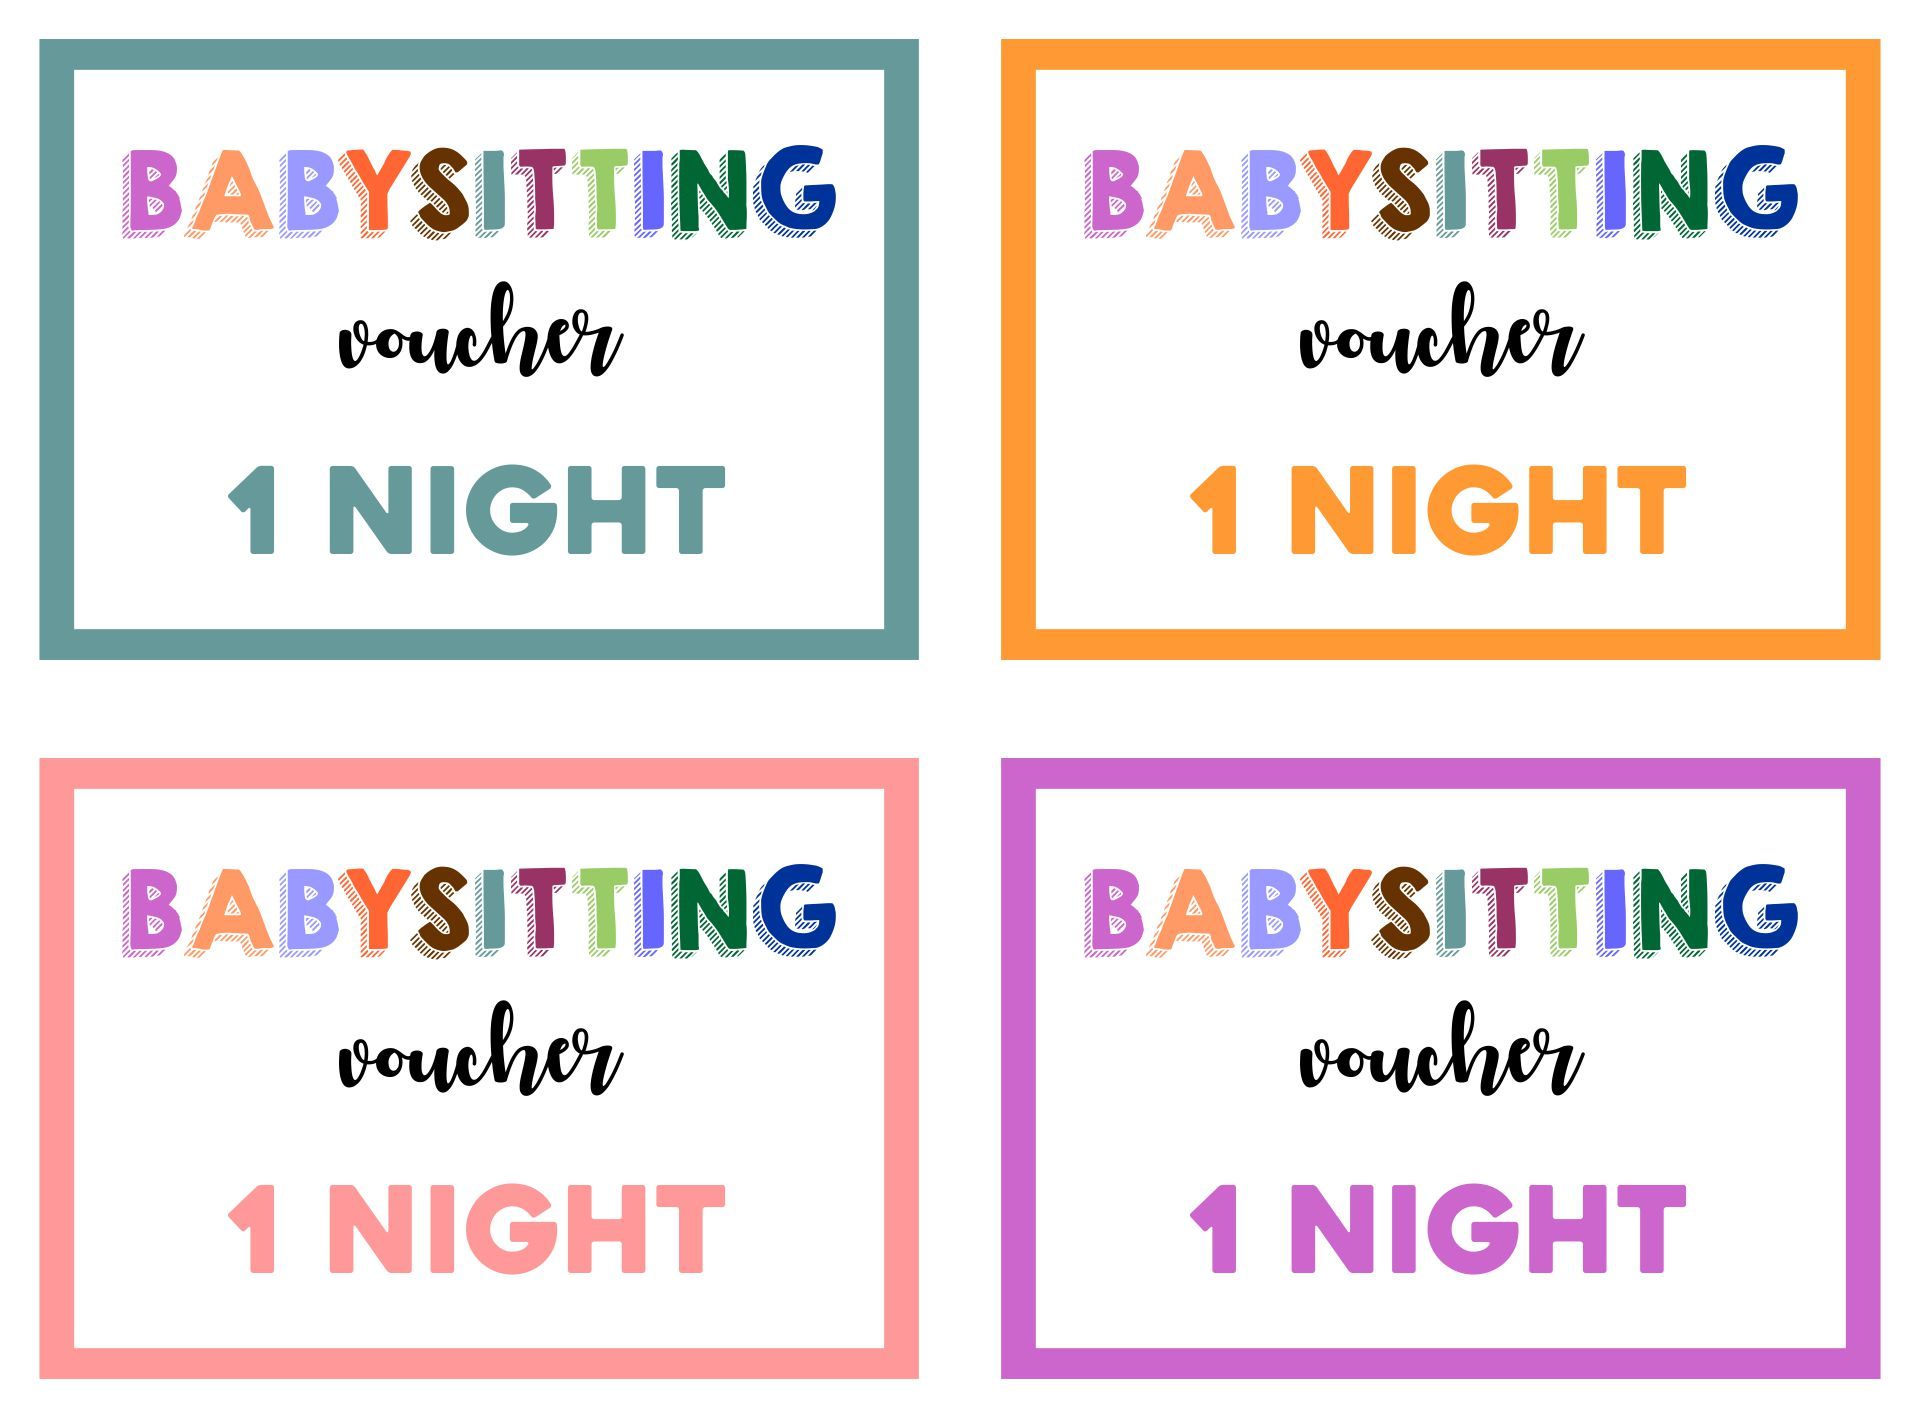 Free Babysitting Gift Certificate Template from www.printablee.com